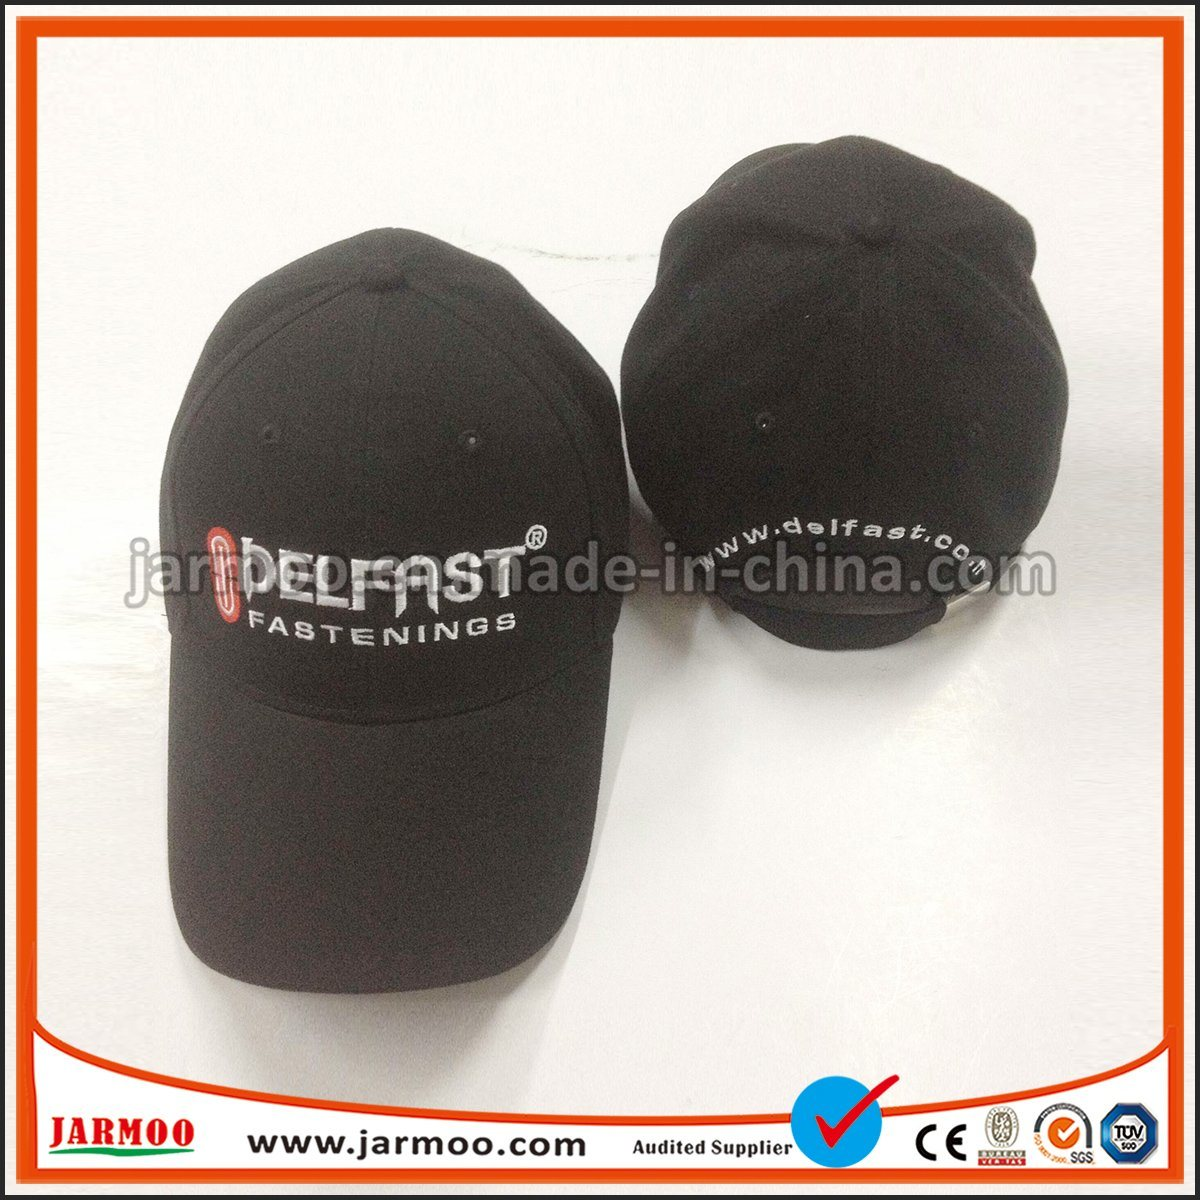 39b3430b Baseball Cap Factory, Baseball Cap Factory Manufacturers & Suppliers |  Made-in-China.com